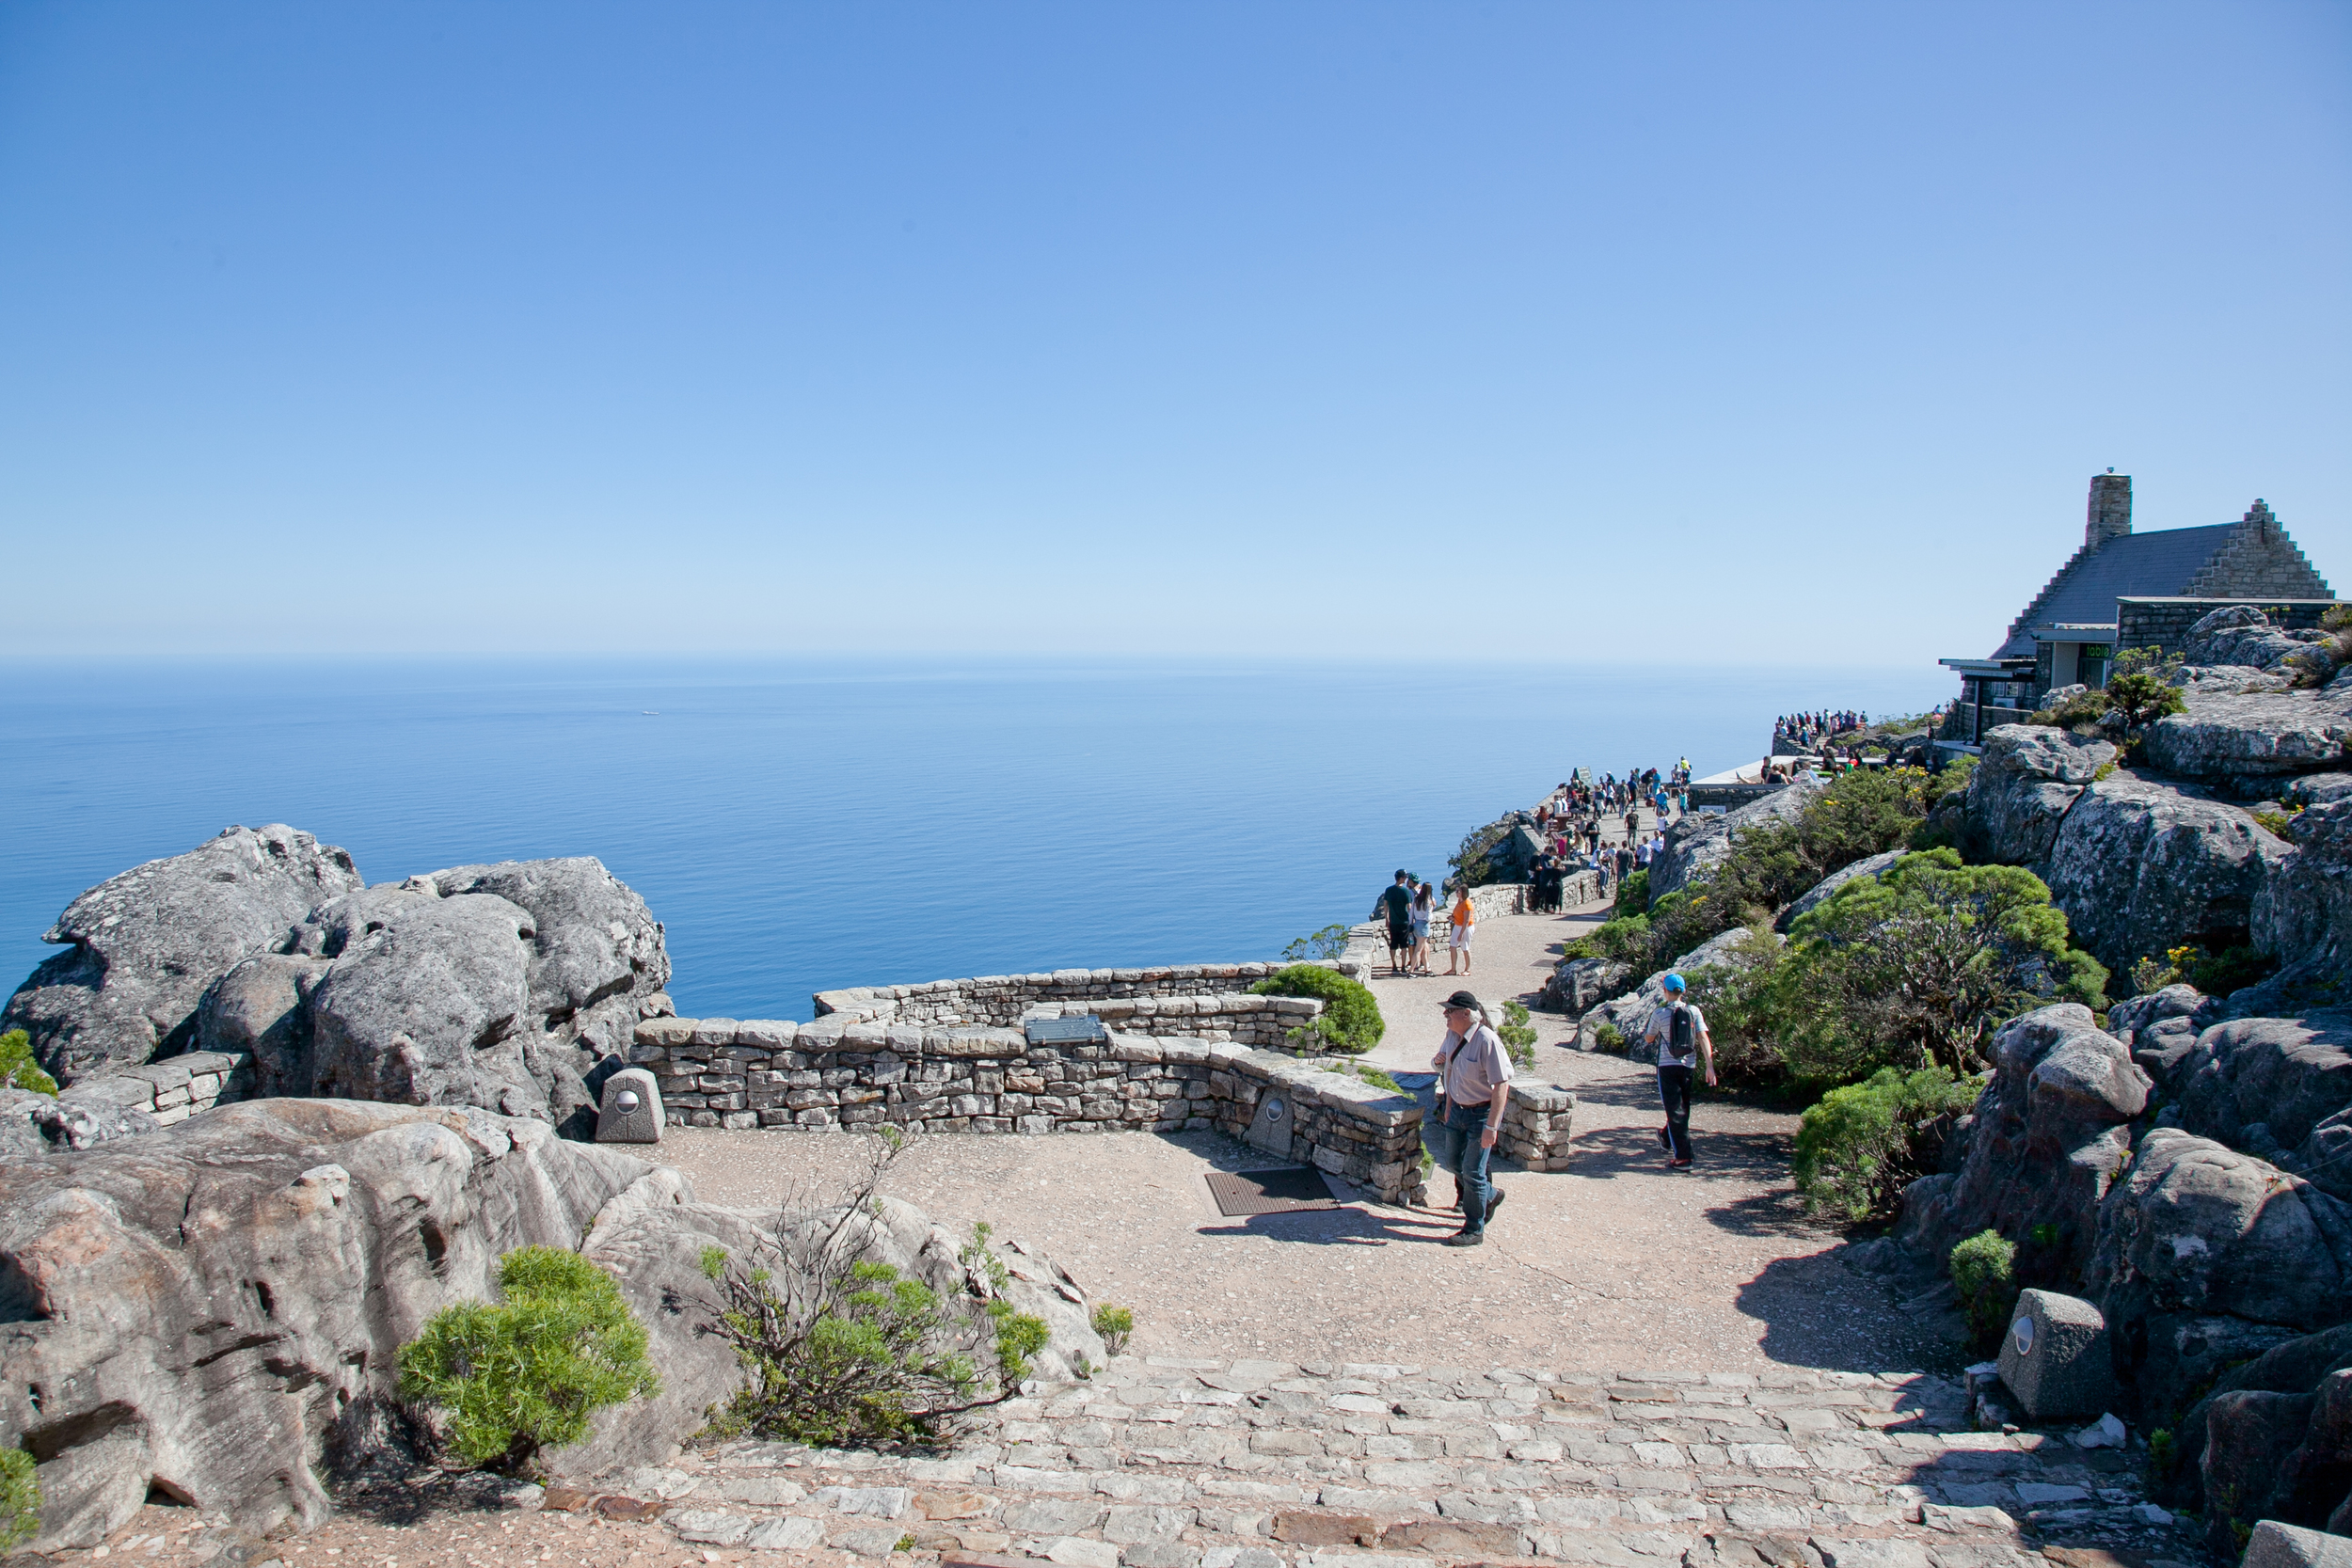 IMG_4679-table-mountain-cape-town-south-africa-trisa-taro.jpg